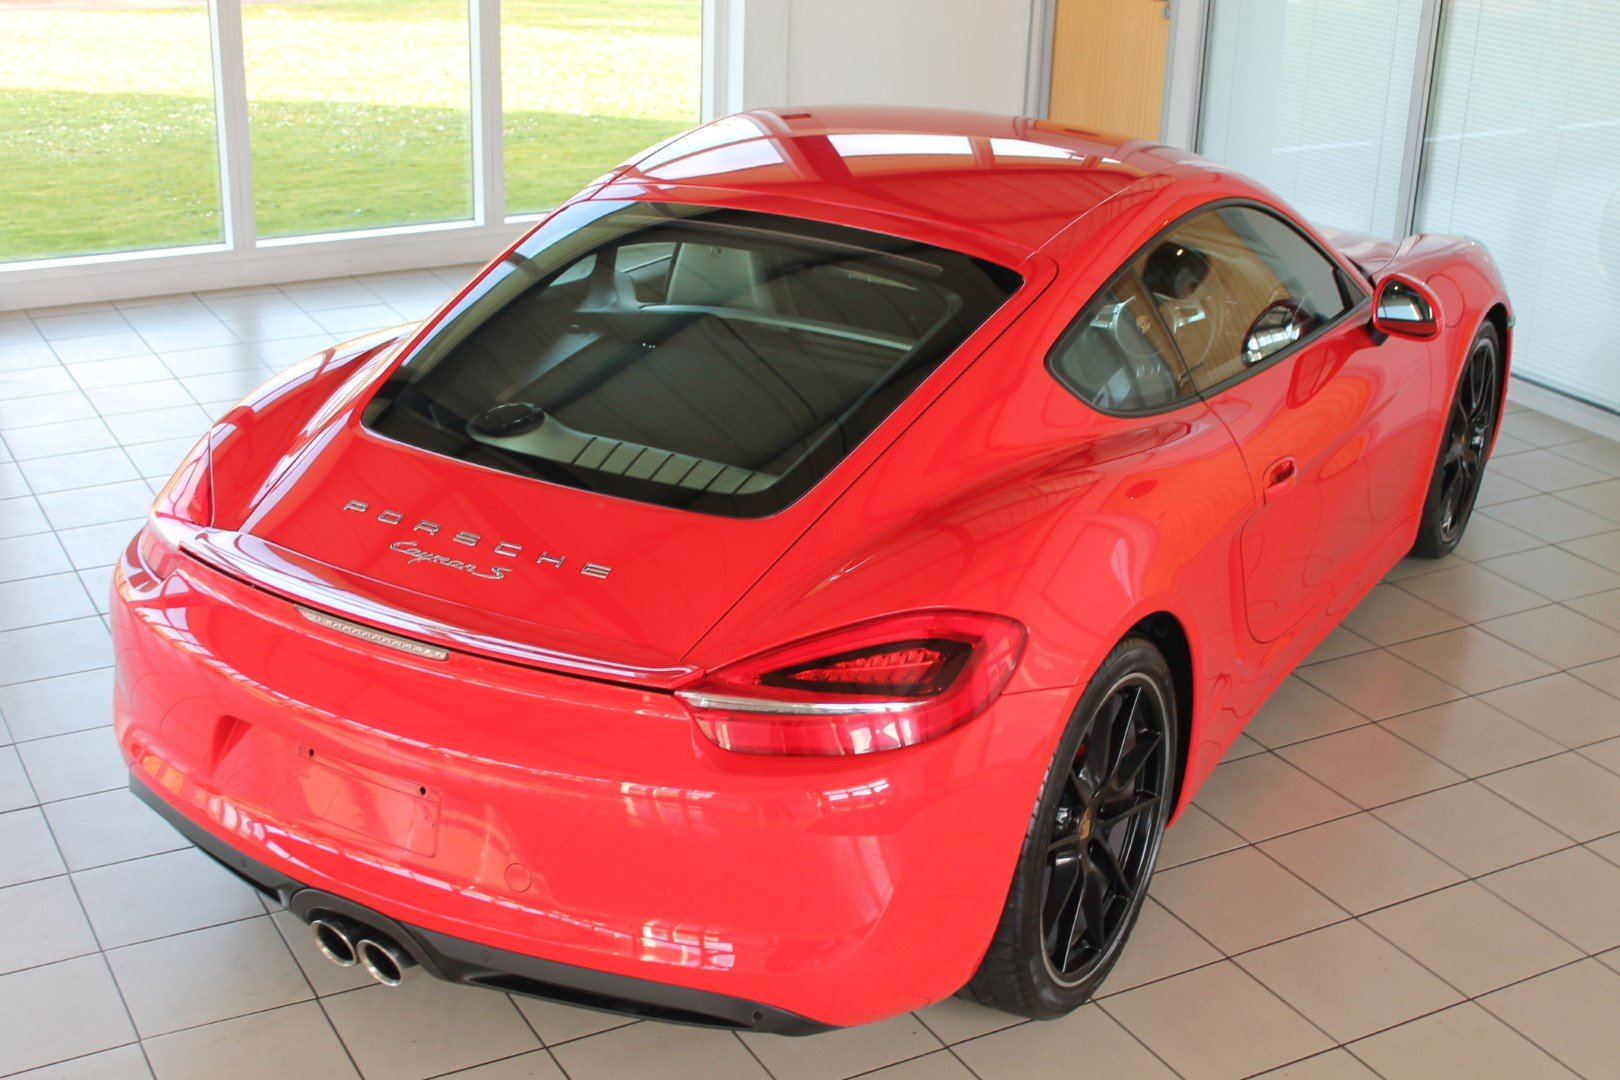 2014 Cayman (981) S Manual For Sale (picture 4 of 6)